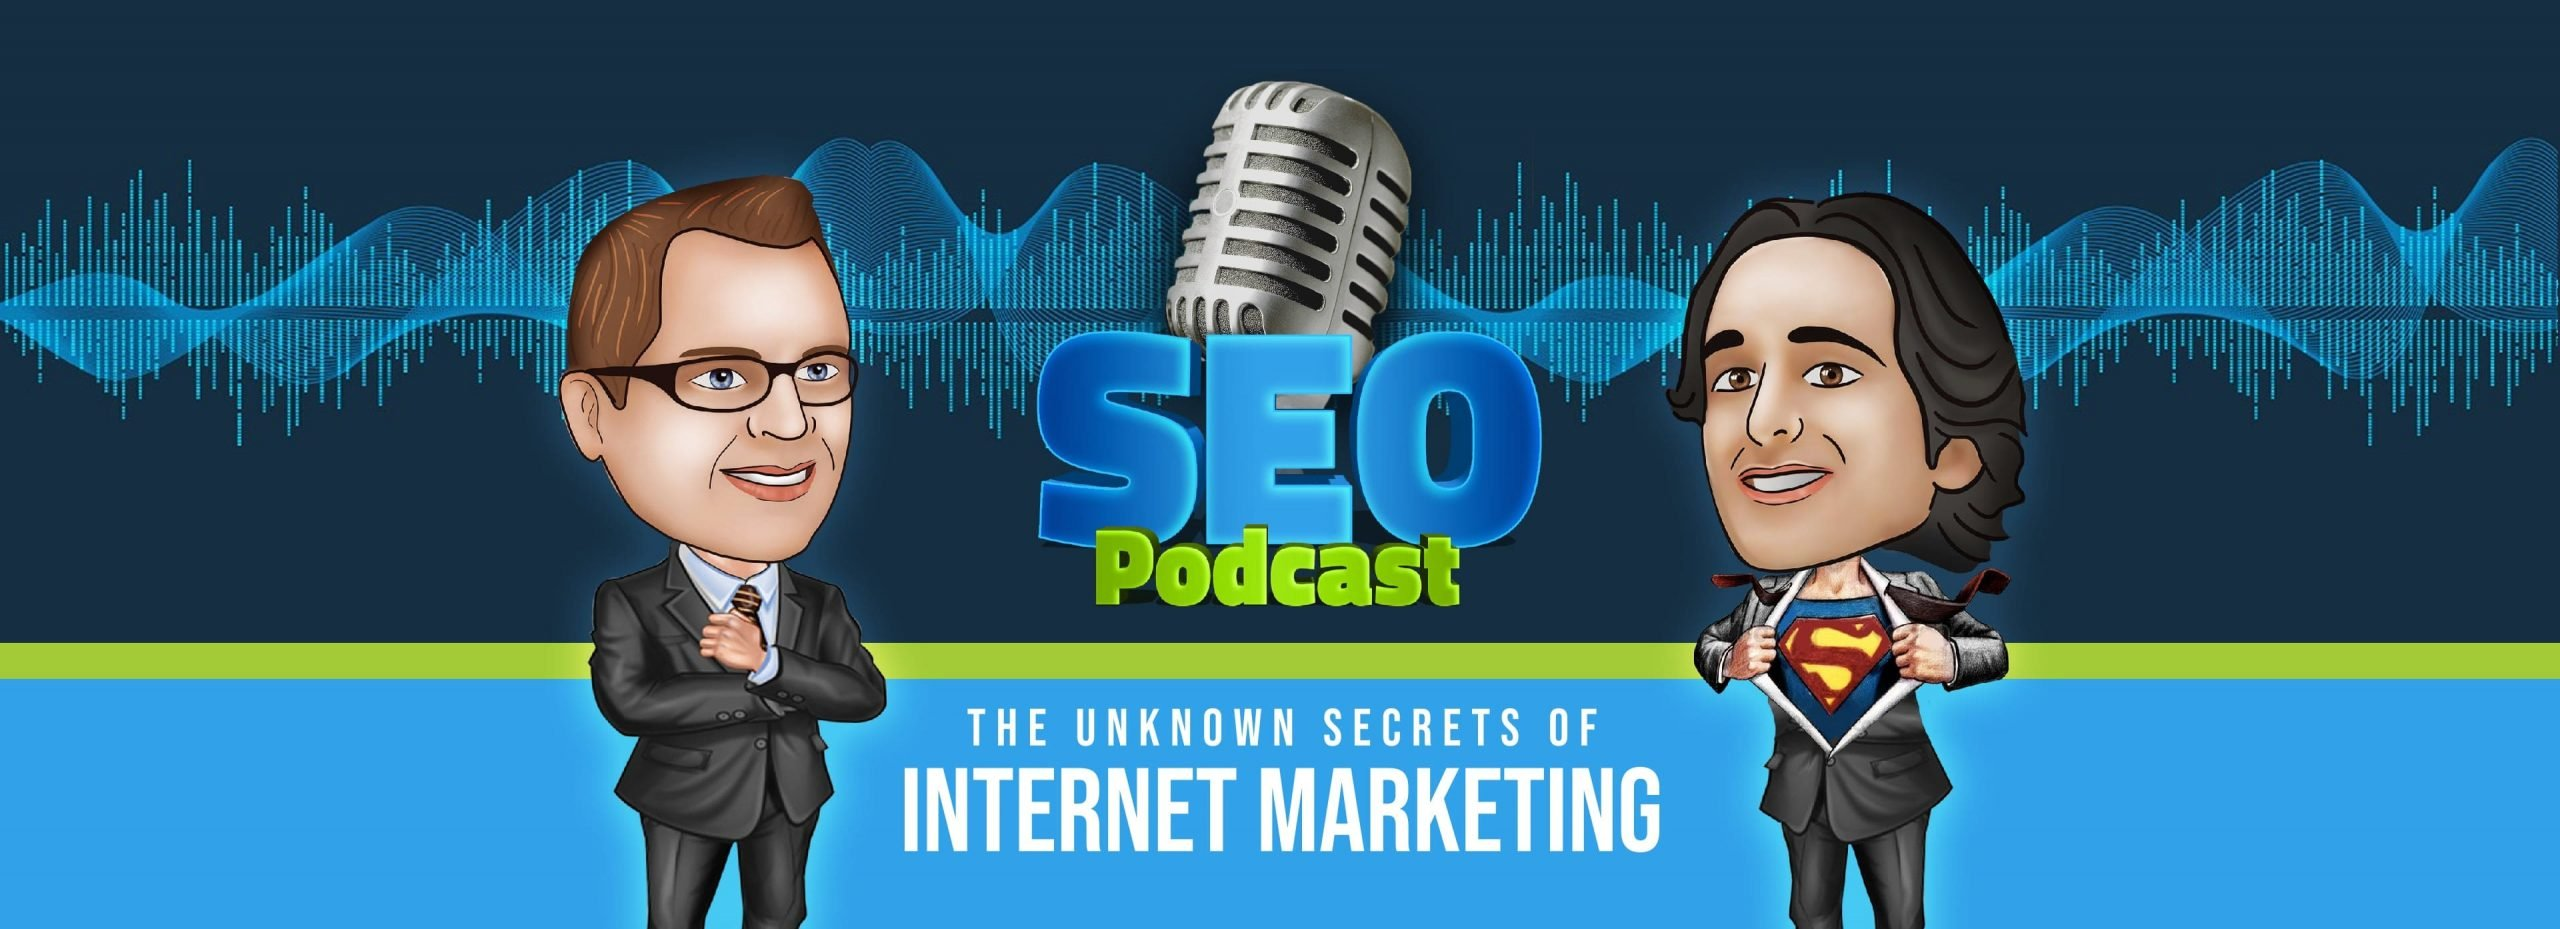 Best SEO Podcast